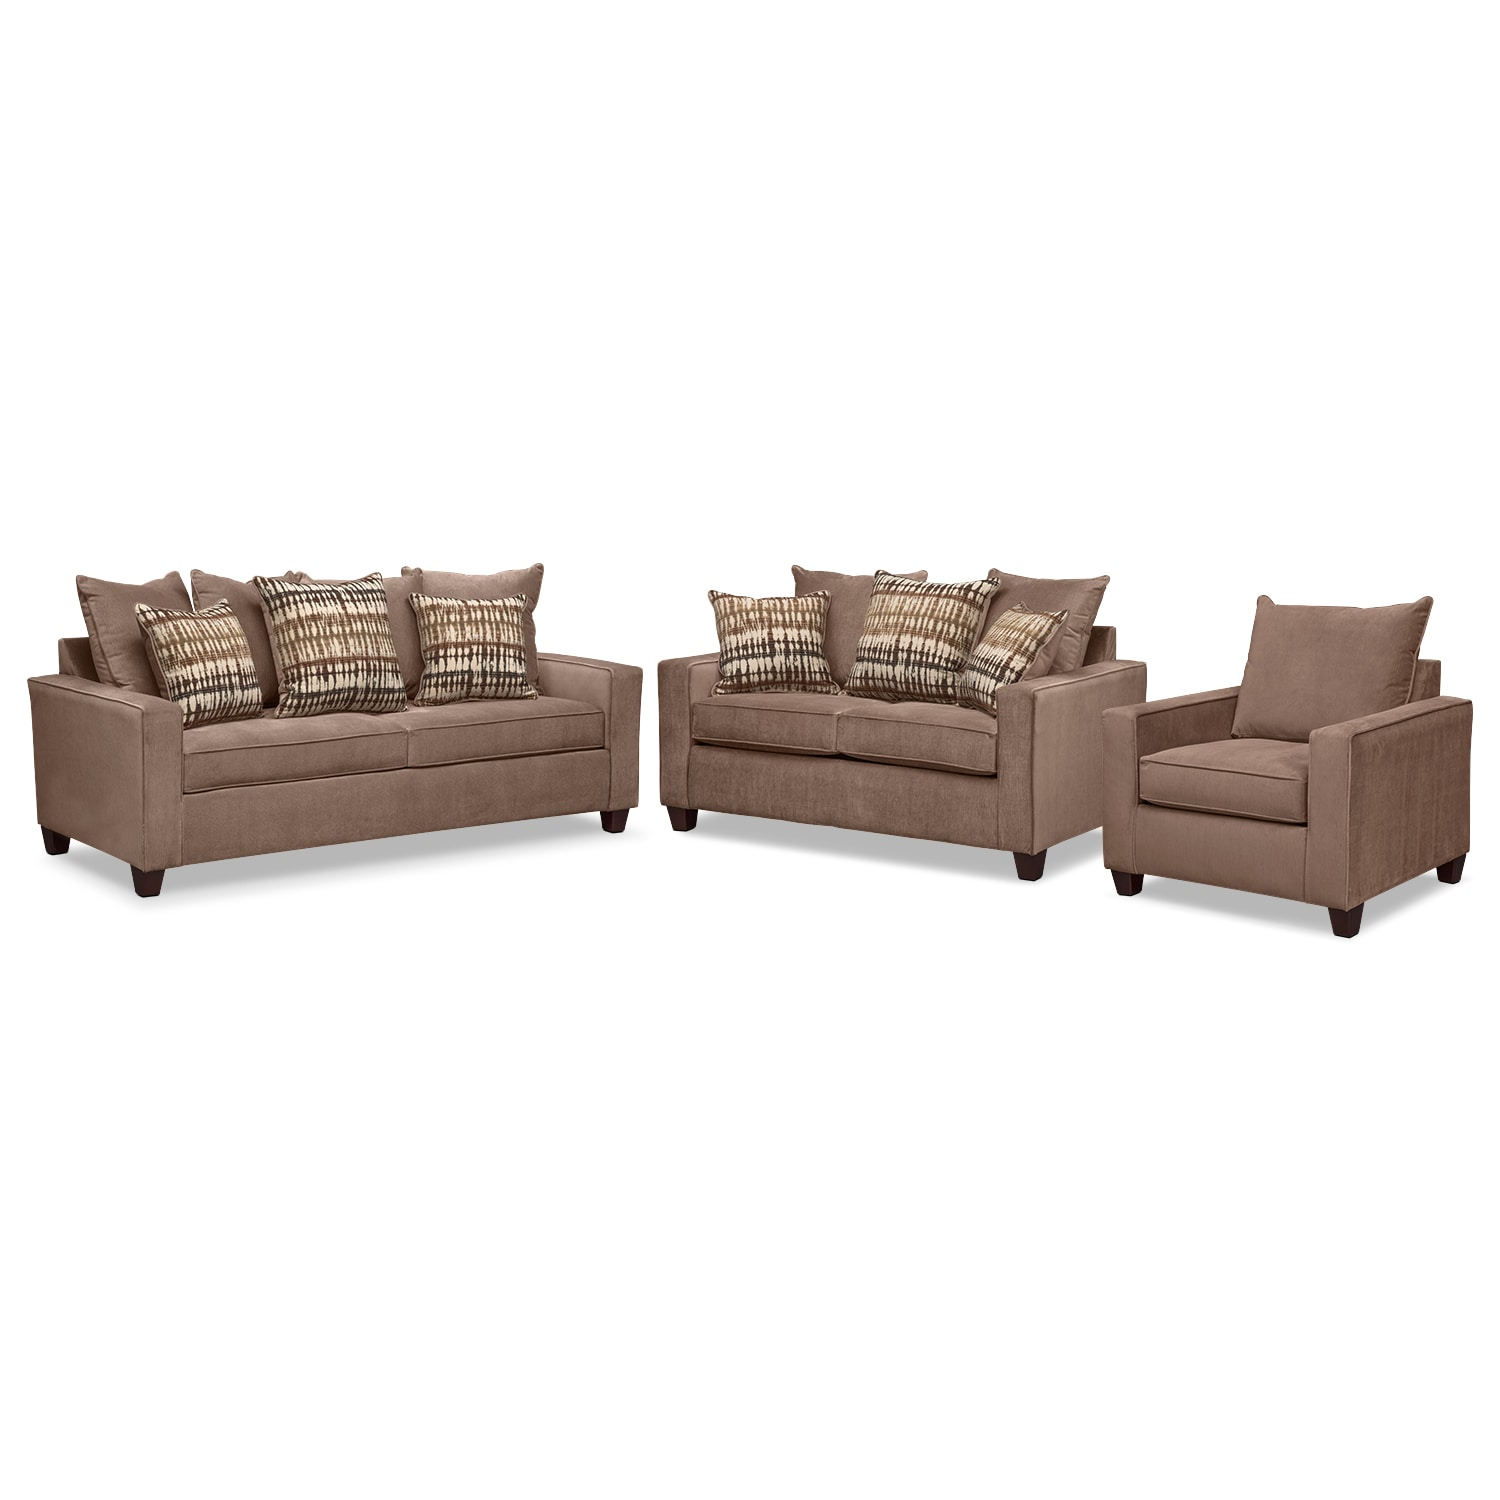 Living Room Furniture - Bryden Queen Innerspring Sleeper Sofa, Loveseat and Chair Set - Chocolate